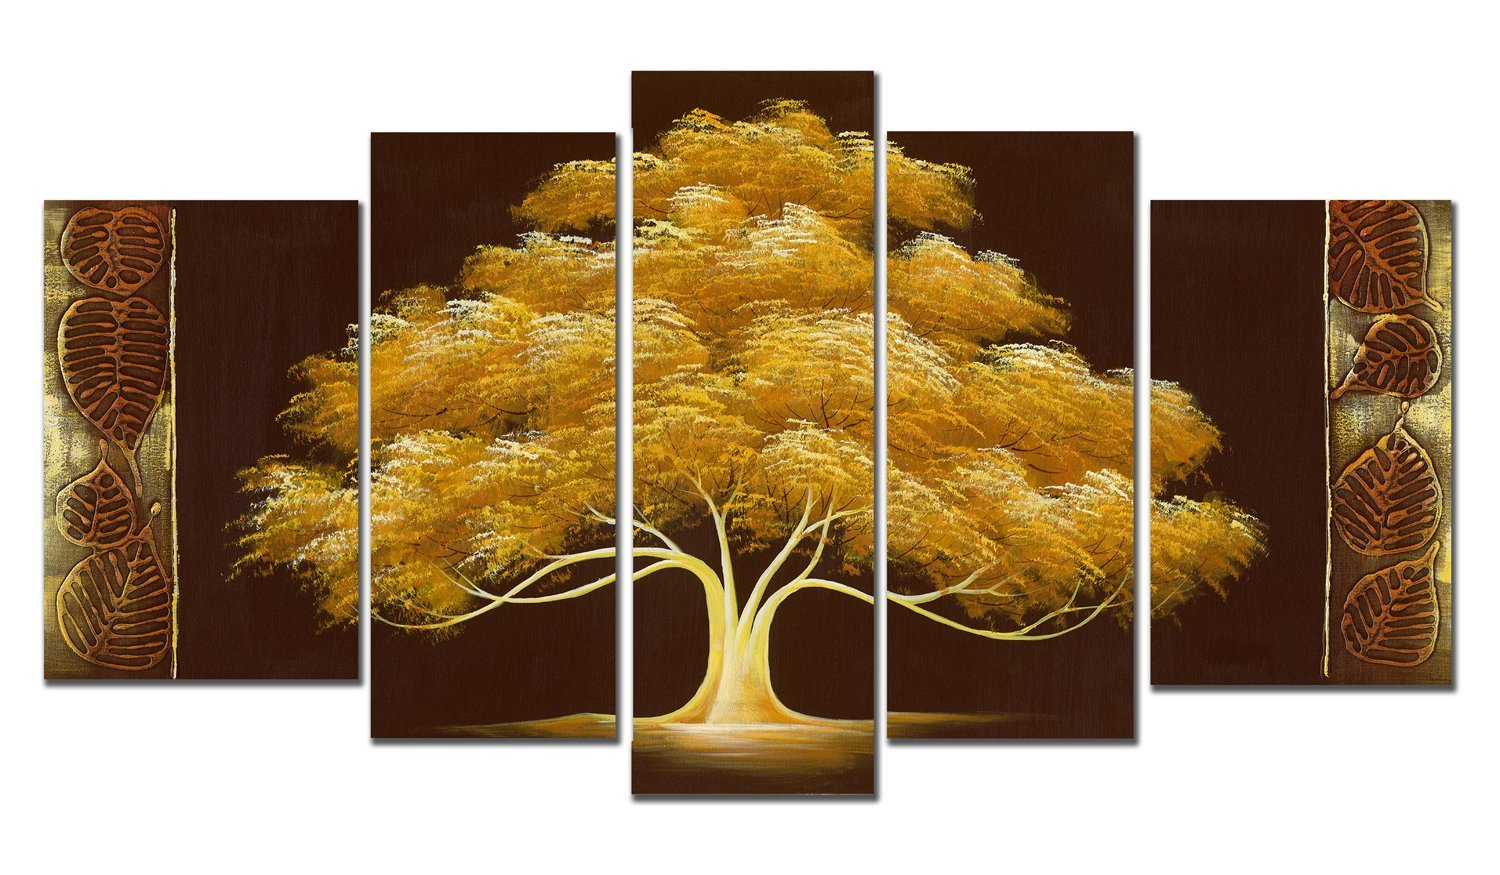 Buy Wieco Art Golden Tree 5 Piece Abstract Floral Oil